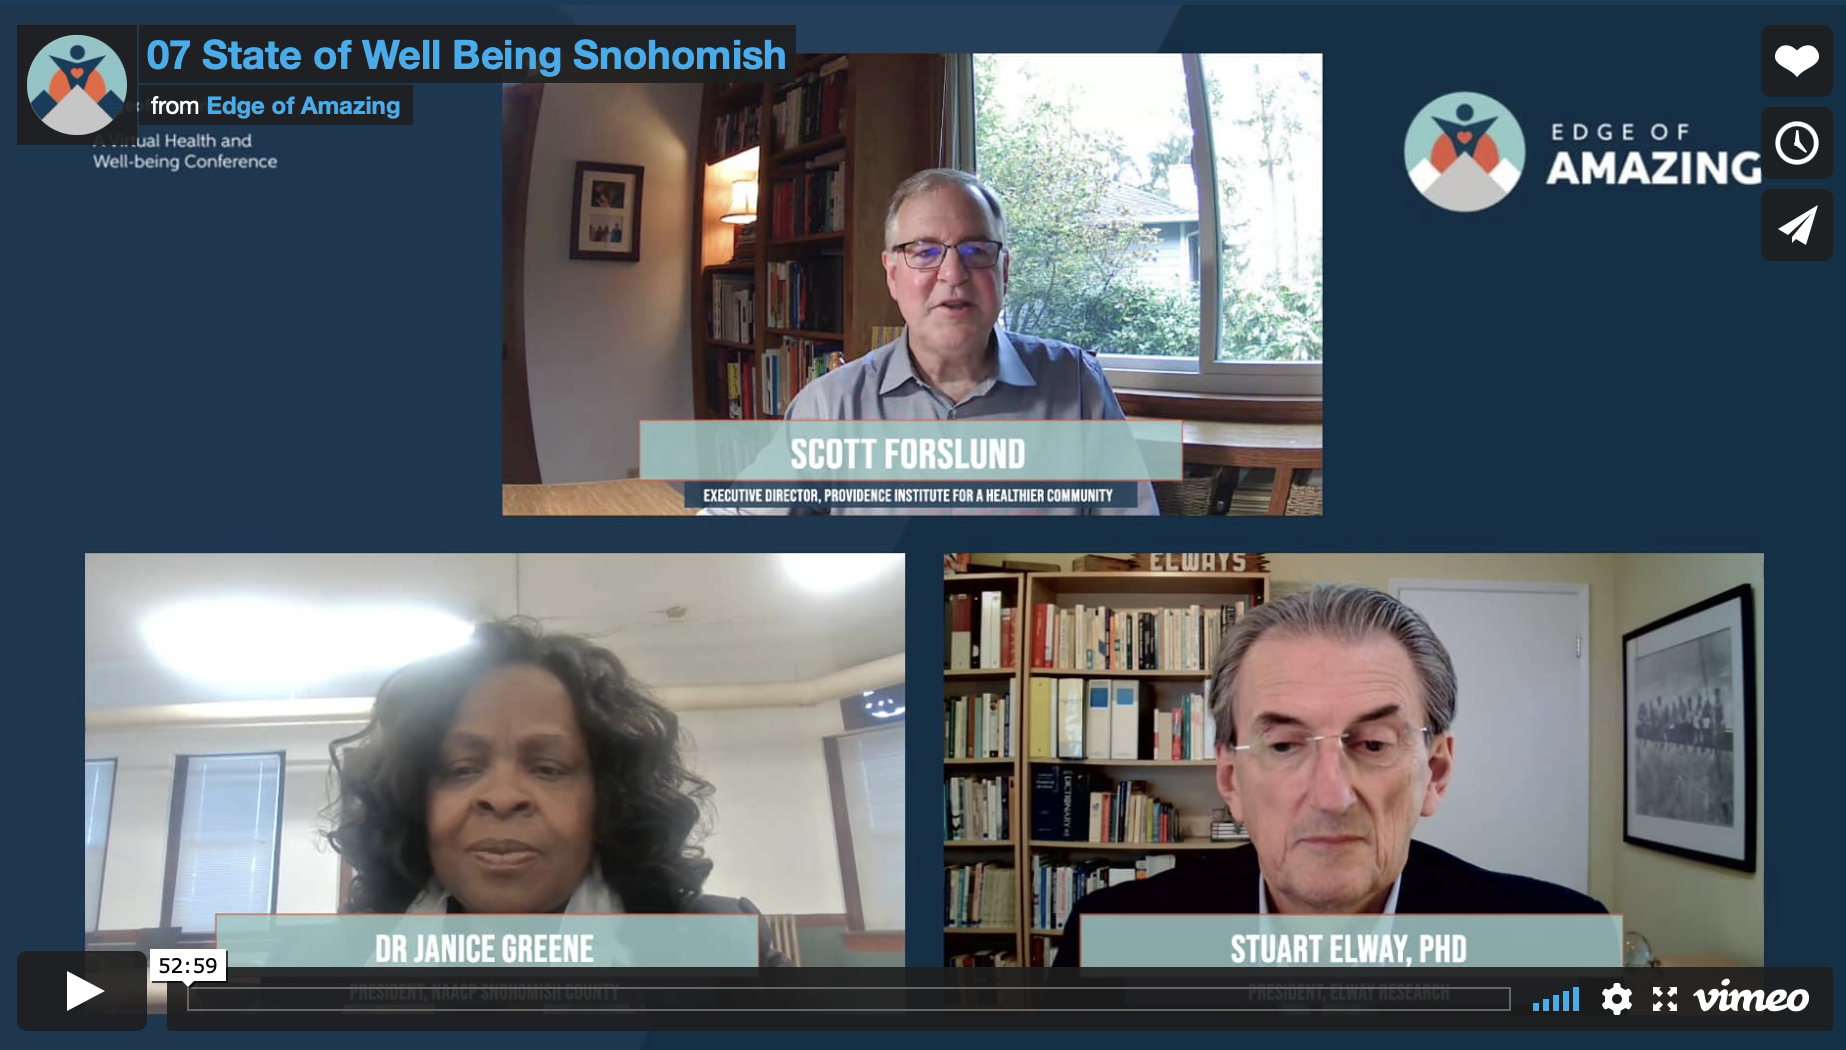 Well Being Snohomish zoom call